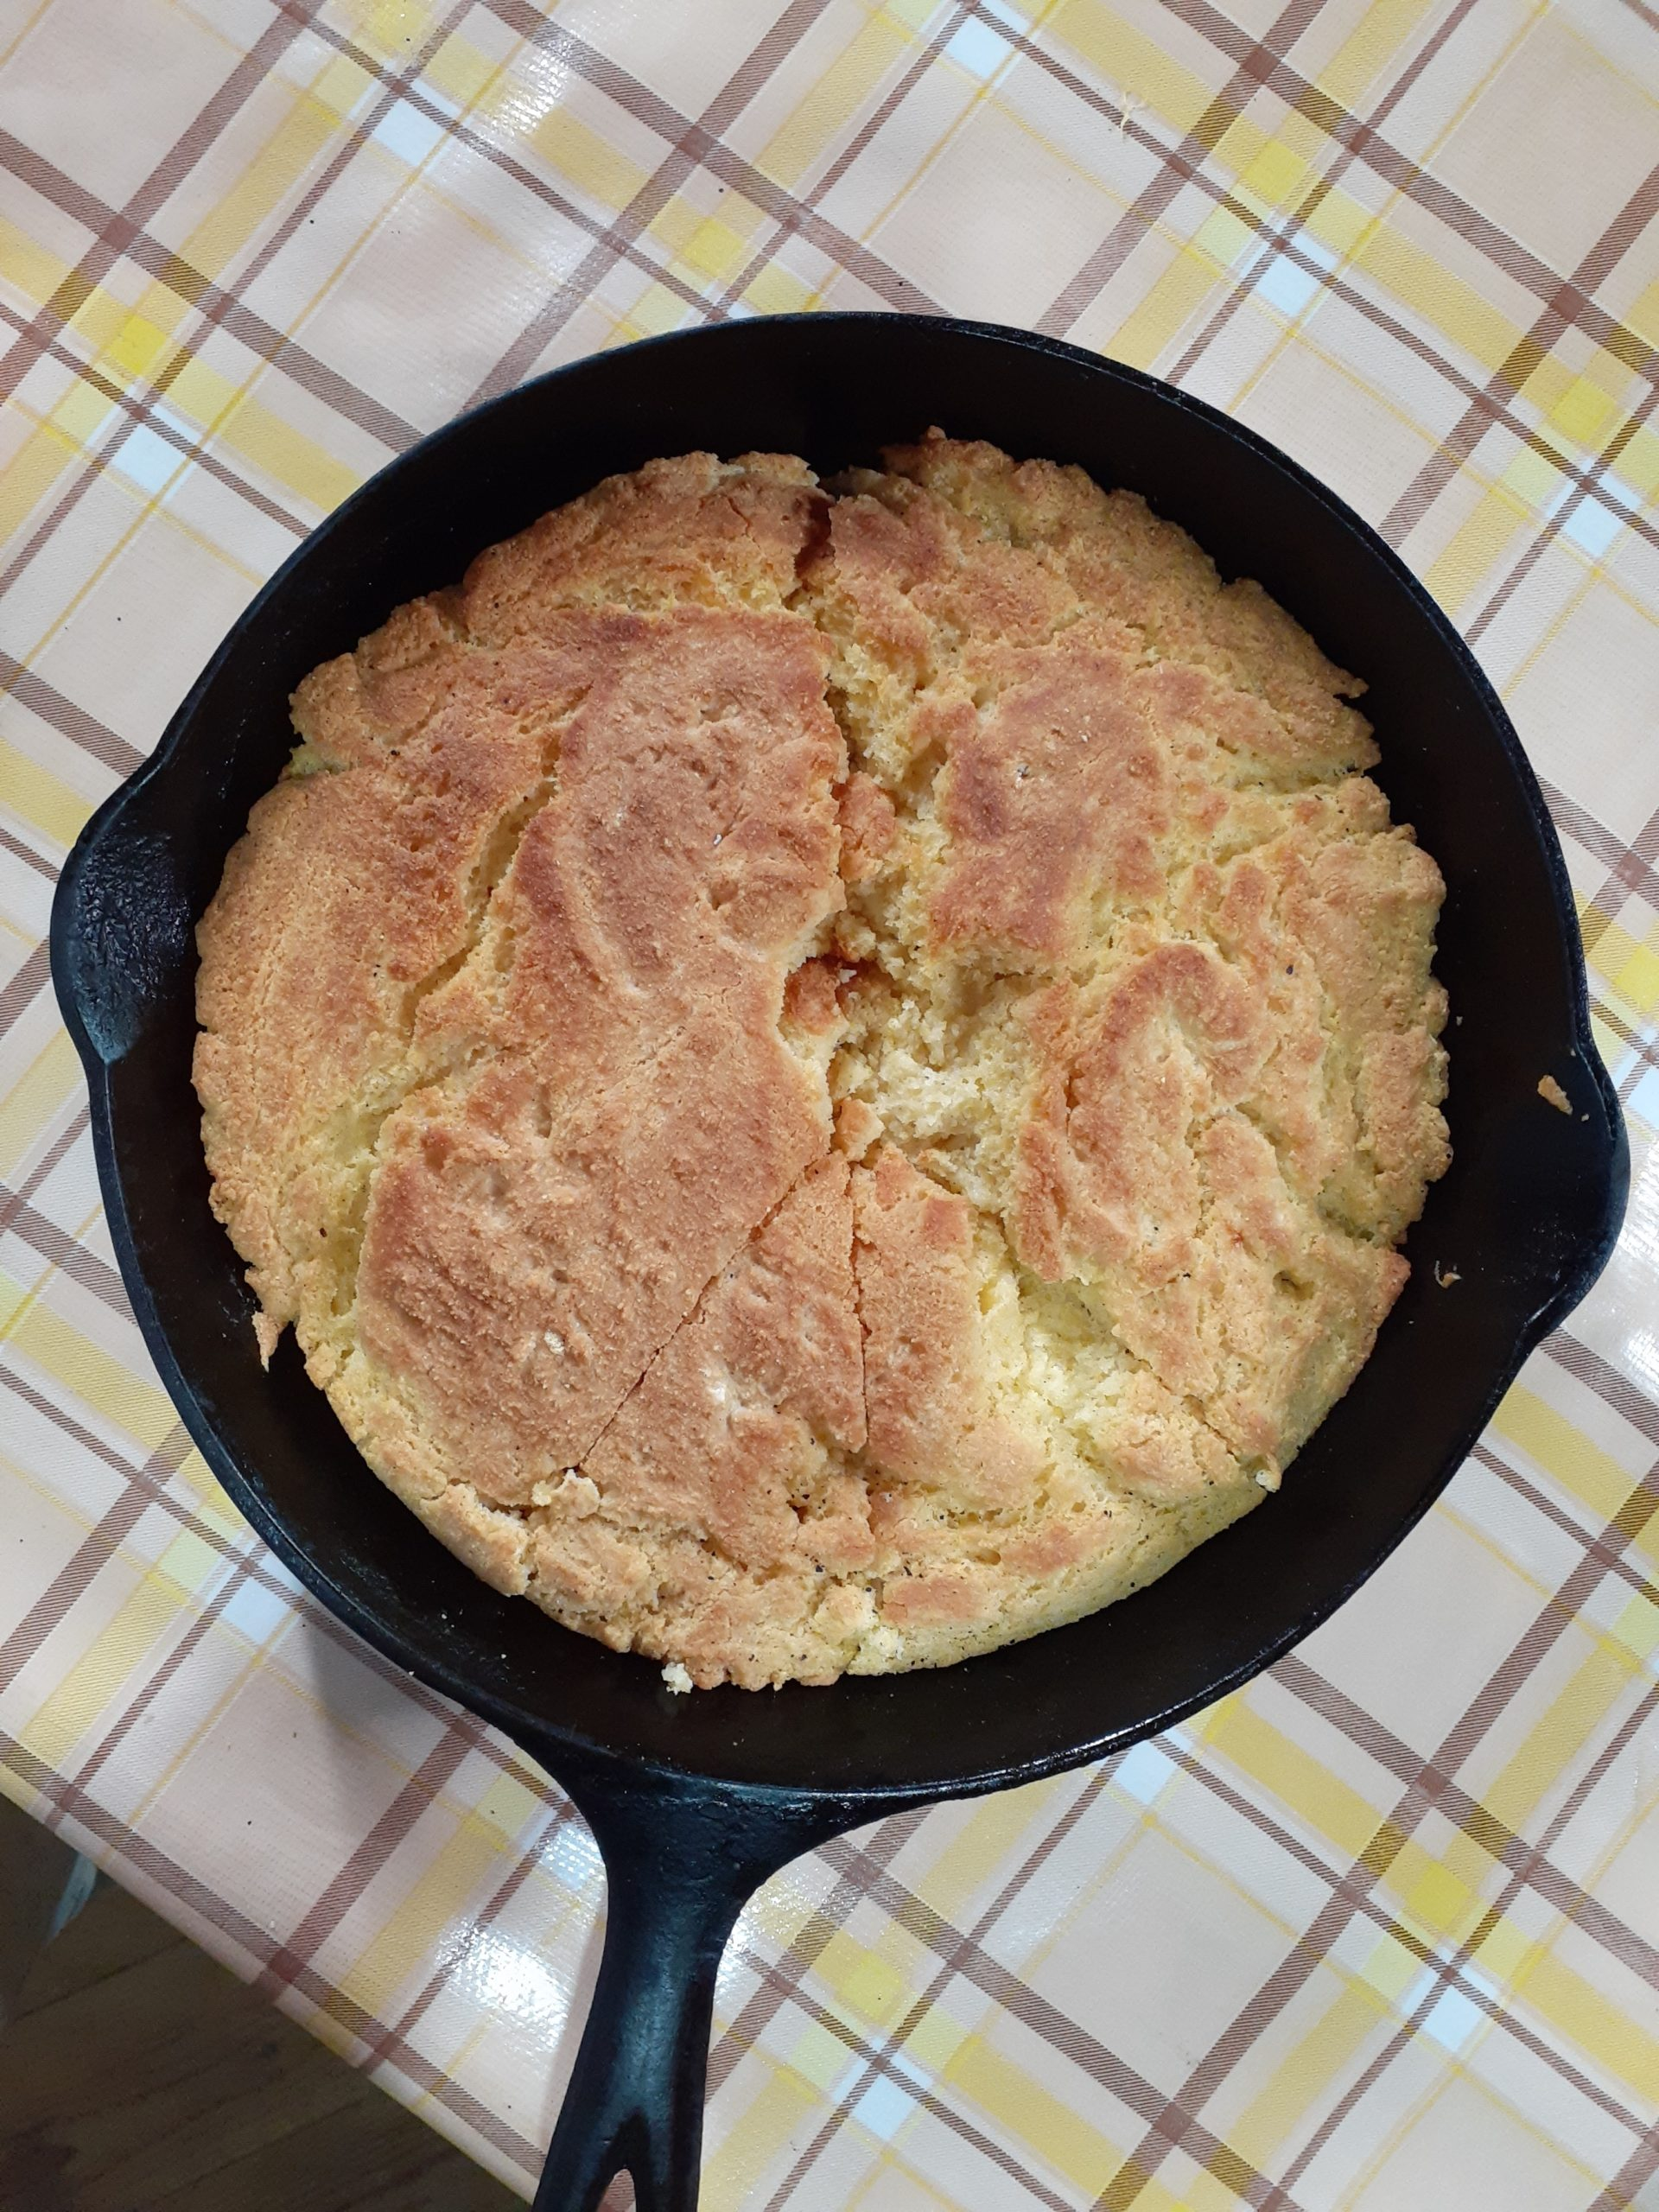 Woodstove Cooking Class: Cast Iron & Corn Bread